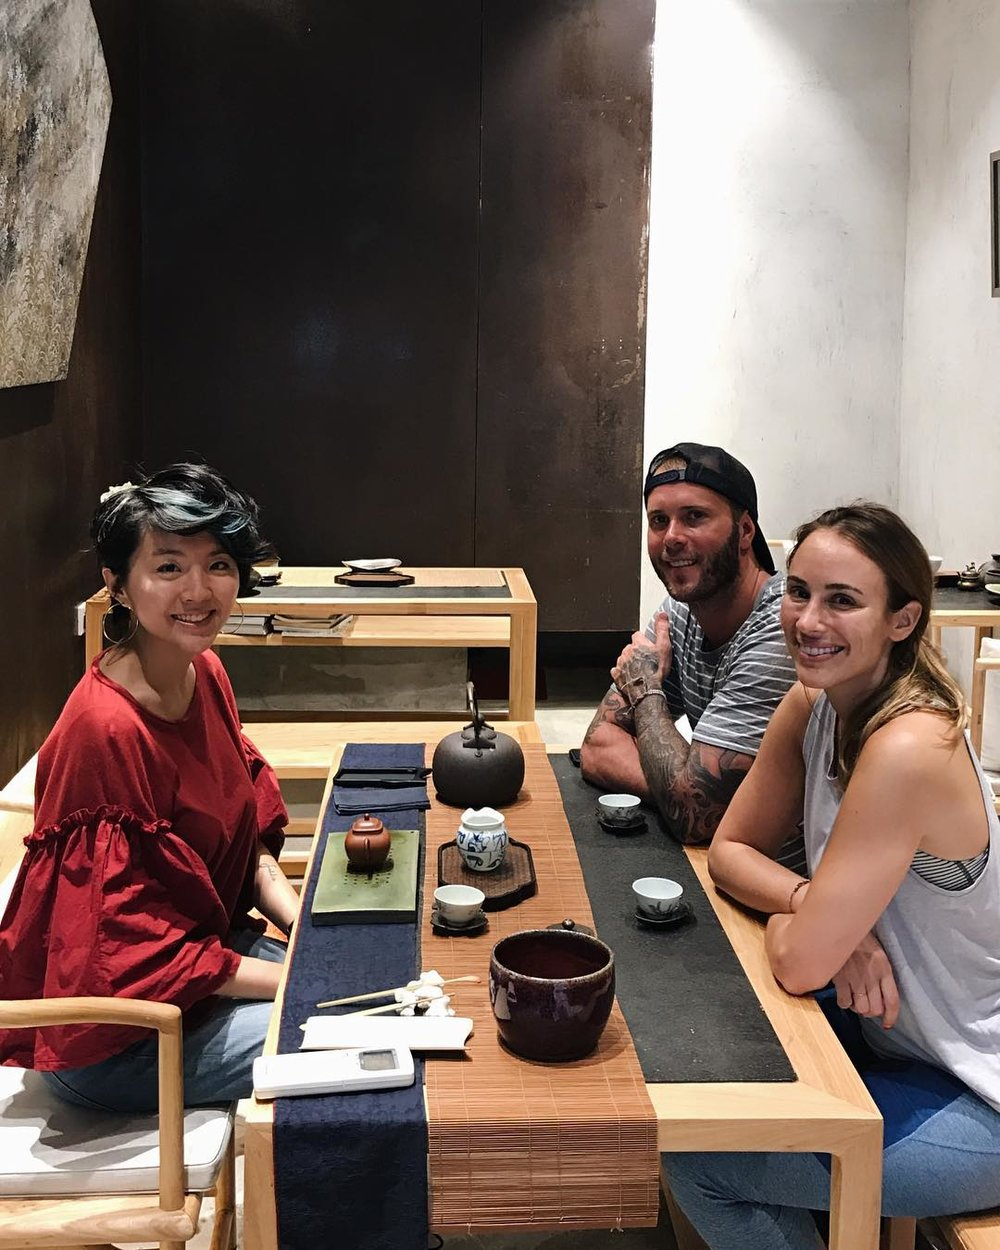 Chinese tea tasting experience on our private tour with Chef Mike Bagale (former executive chef at 3 Michelin-starred restaurant Alinea in Chicago) and food writer Kat Odell.